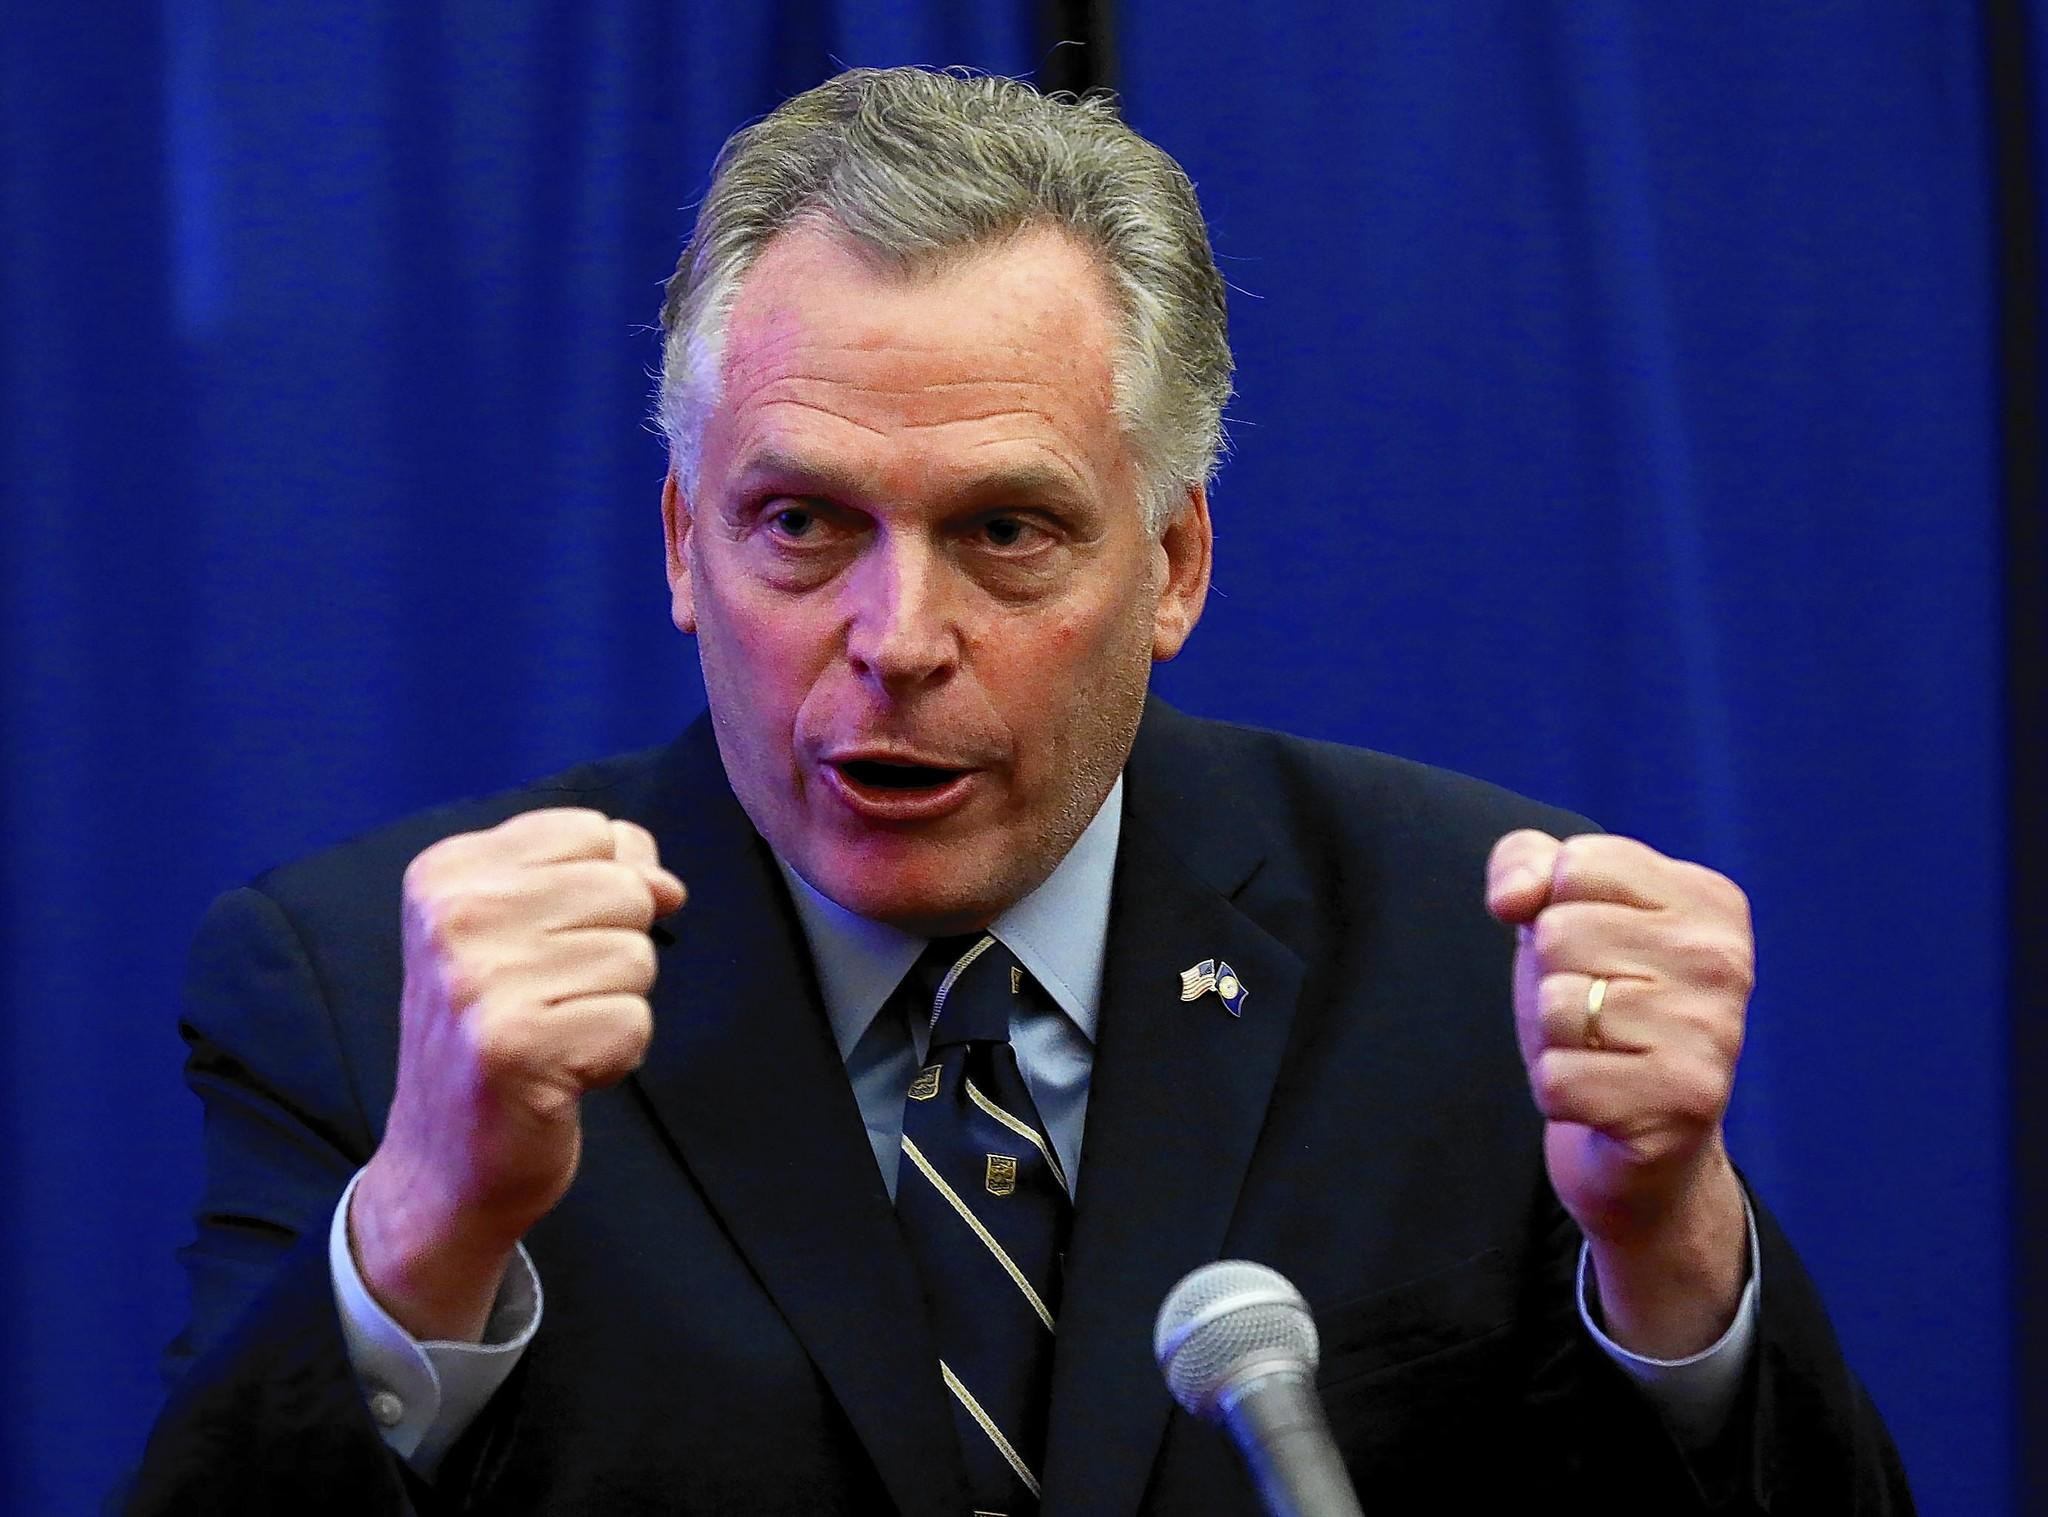 Virginia Gov. Terry McAuliffe gestures during a news conference in Richmond. His success in boosting the Democratic turnout in the election he won last year has made the campaign a hopeful model for this year's Democratic candidates.